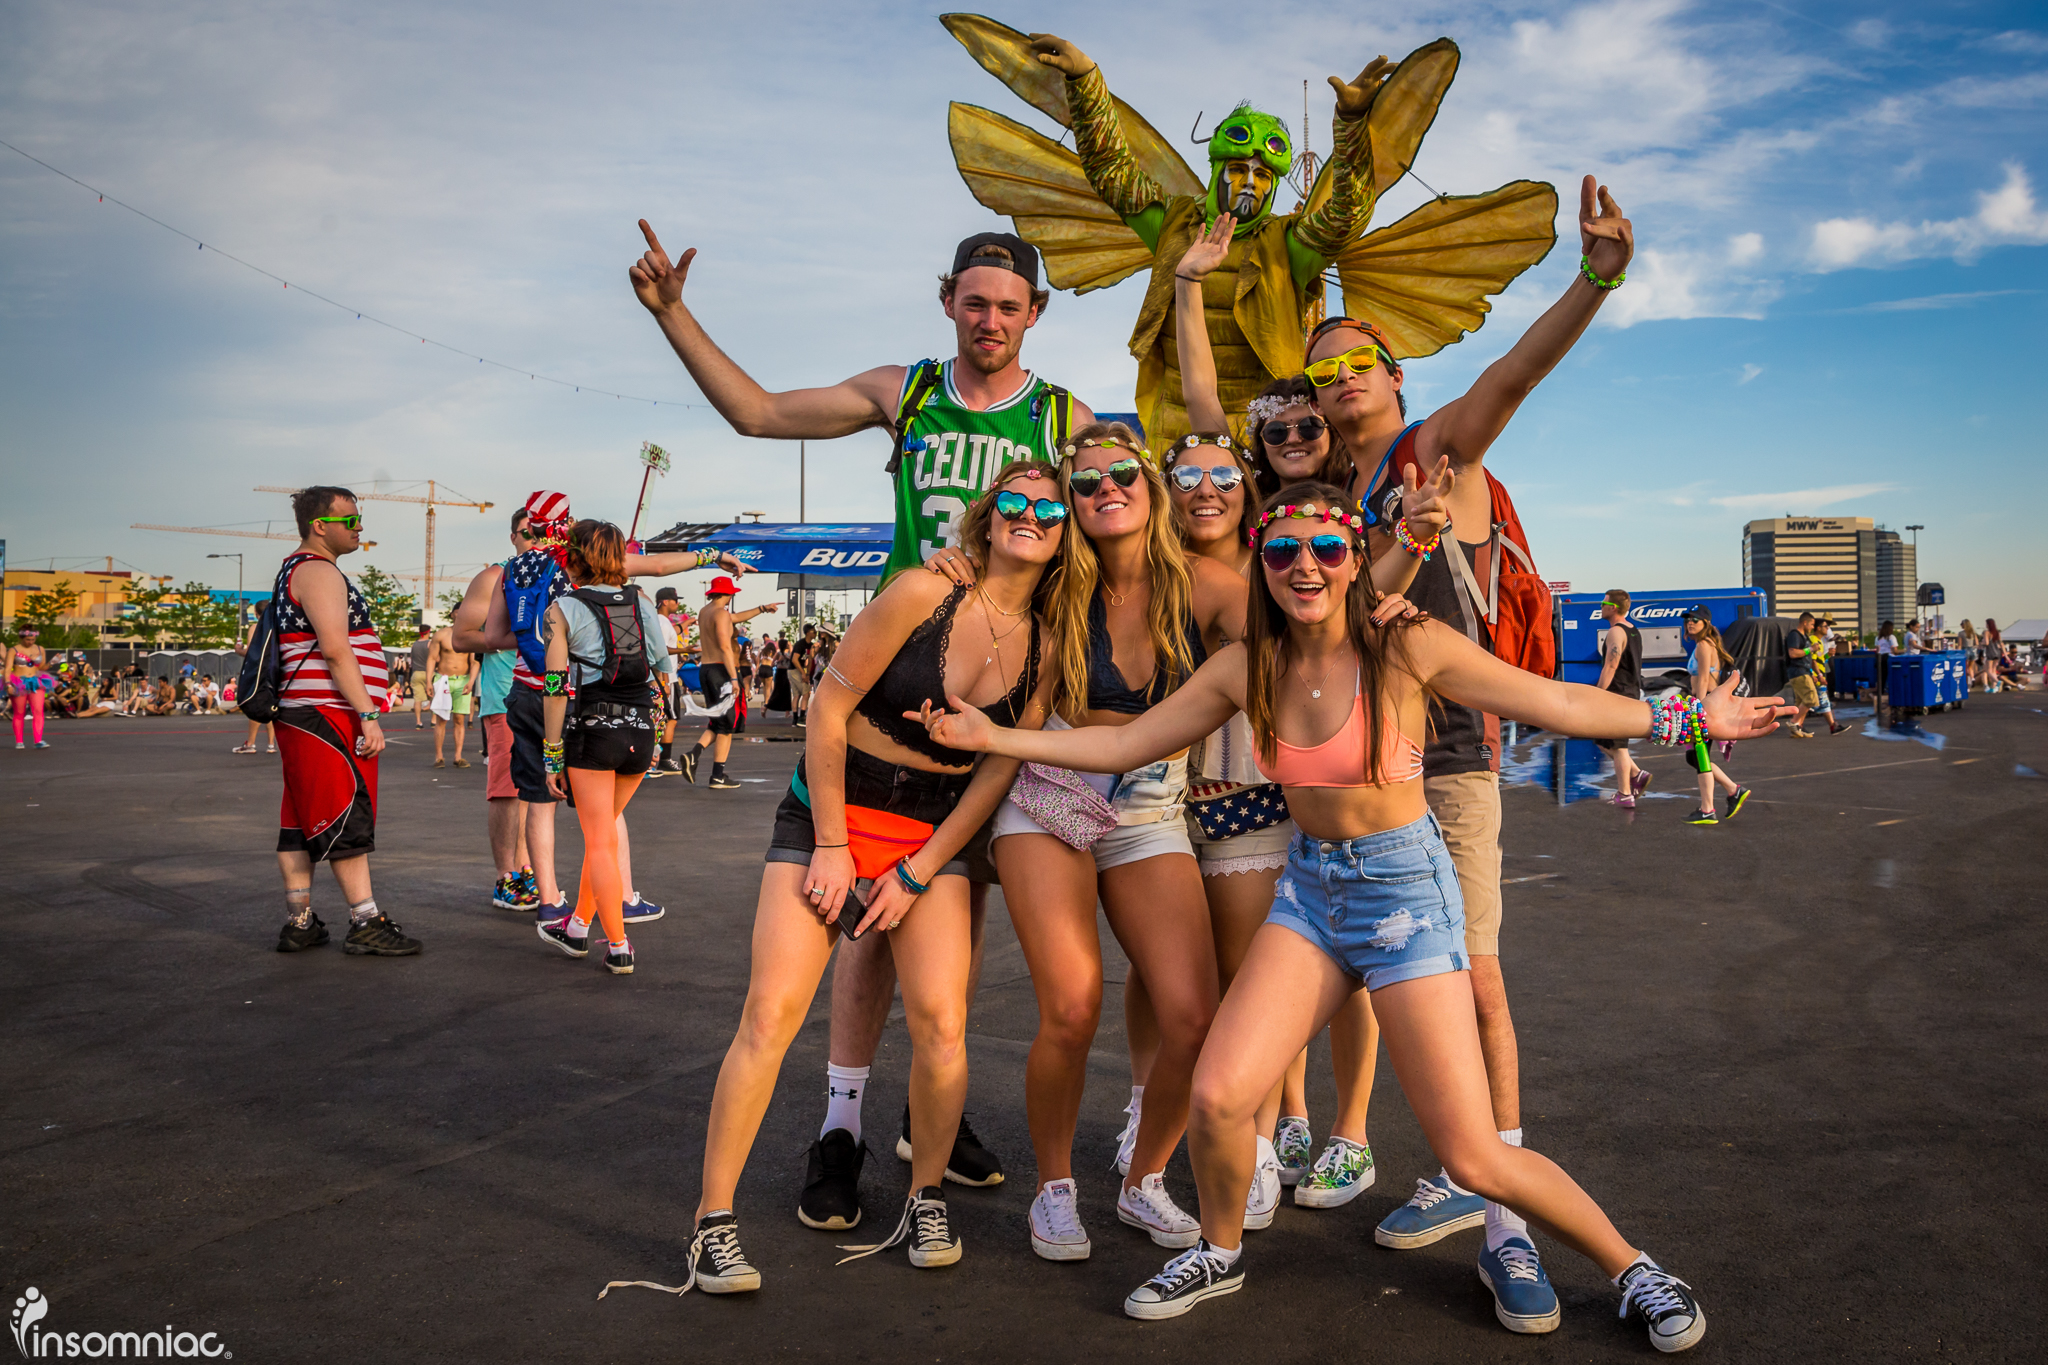 EDCNY_2015_iWally_aLIVECoverage-16.jpg